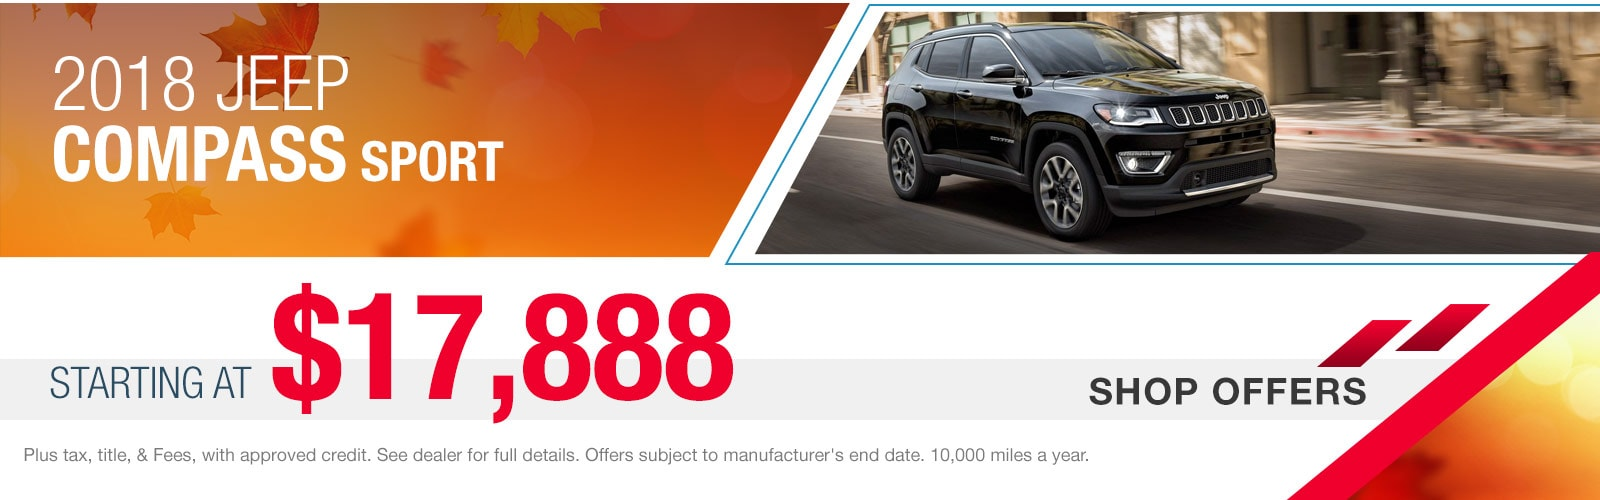 Chrysler Dealership Columbus Ohio >> Top Chrysler Jeep Dodge Ram Dealer In Ohio